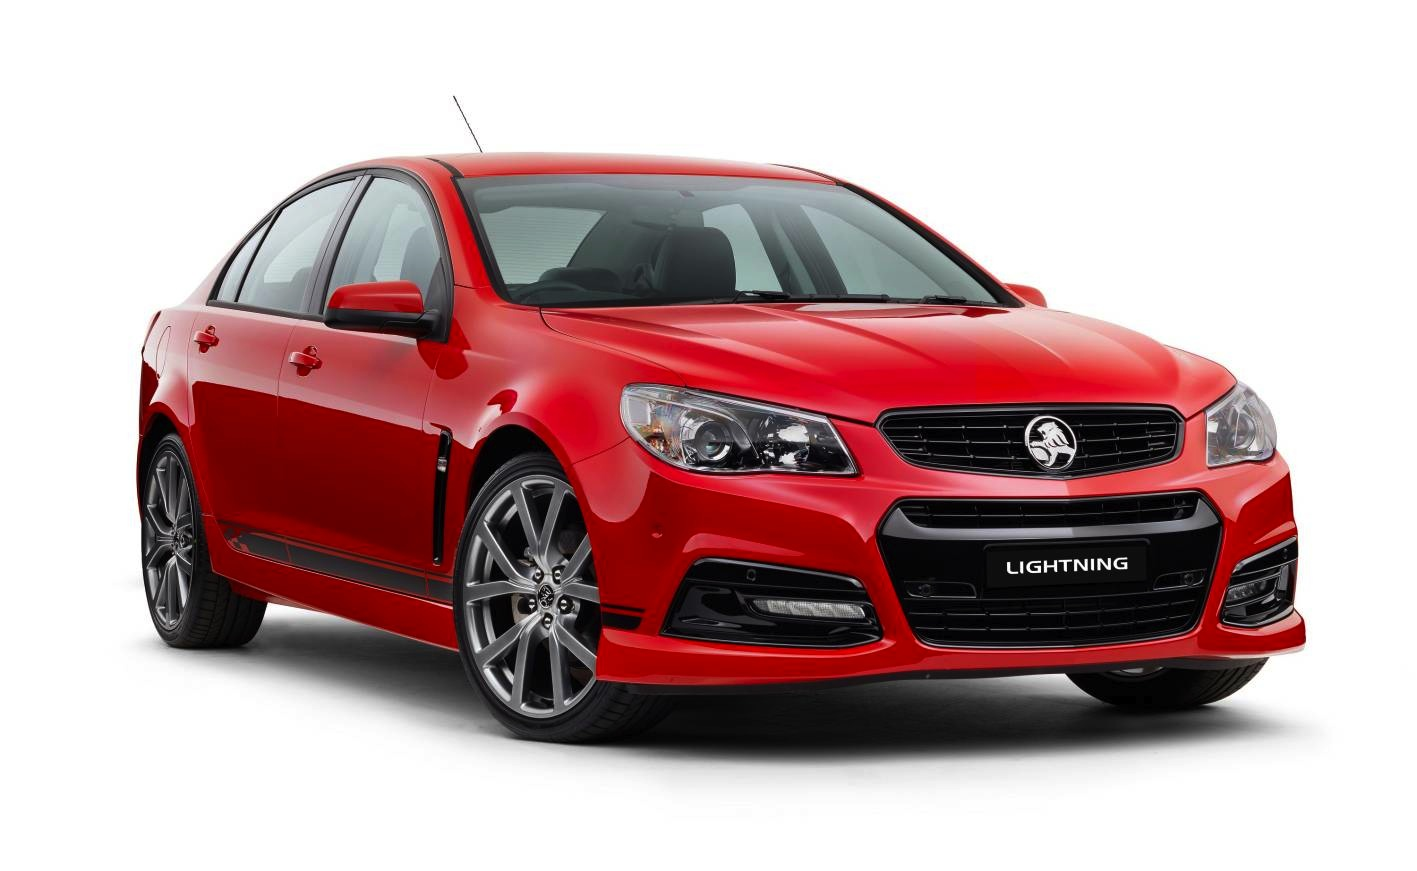 2015 Holden Commodore SV6 Lightning edition on sale from ...